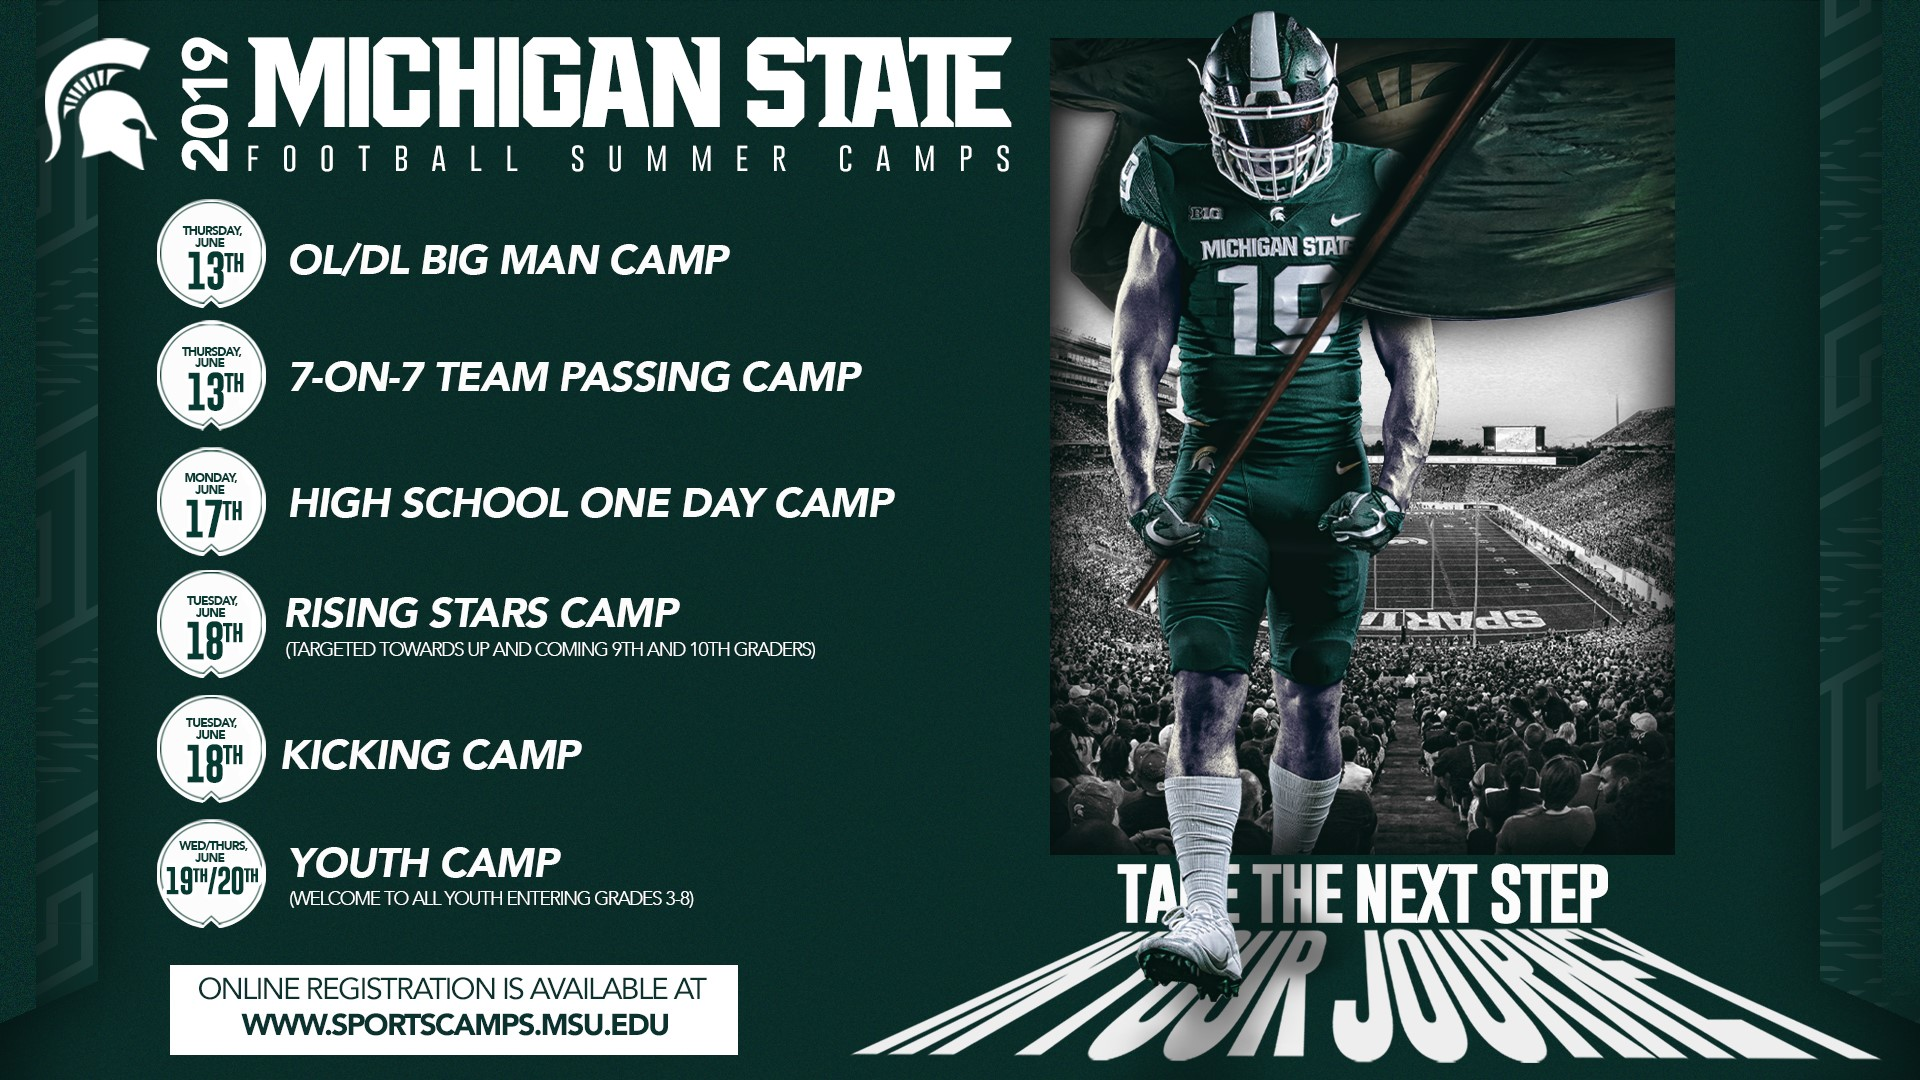 Msu 2019 Calendar Registration Open for Michigan State Football Summer Camps